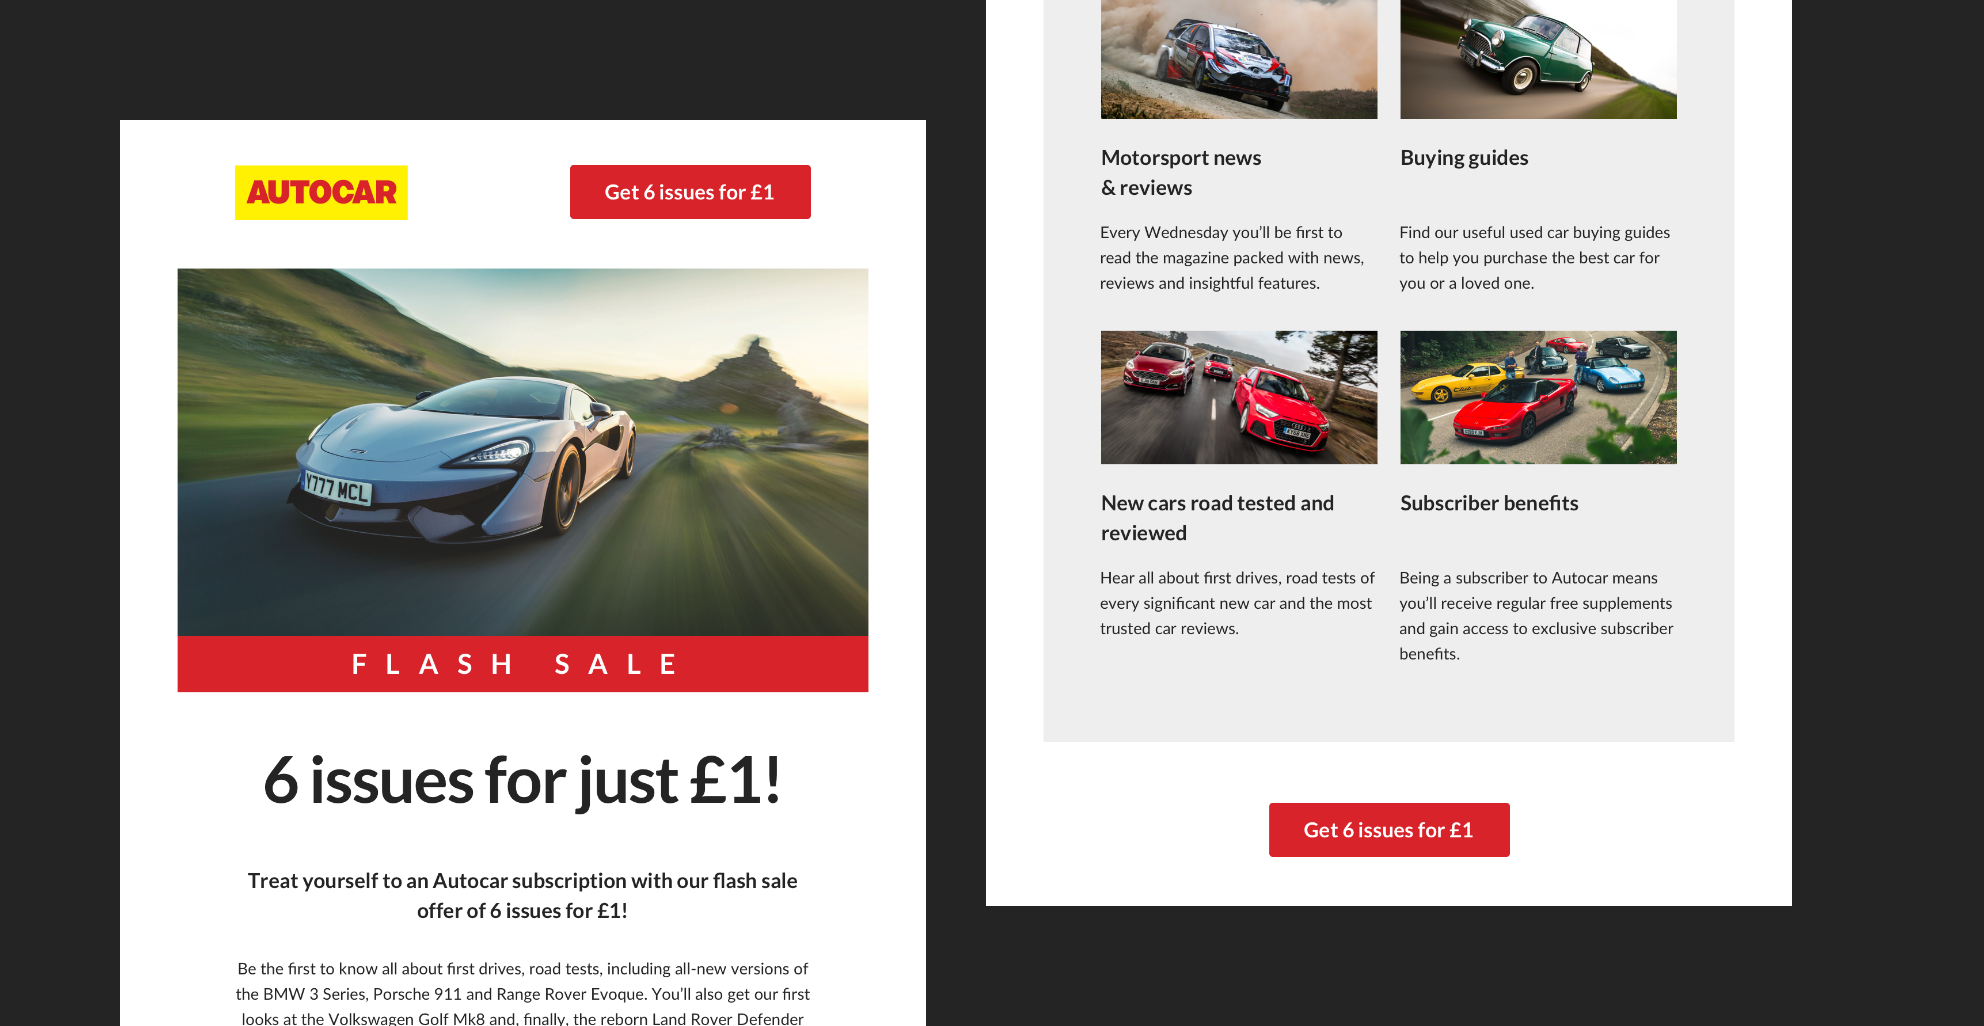 Autocar email layout